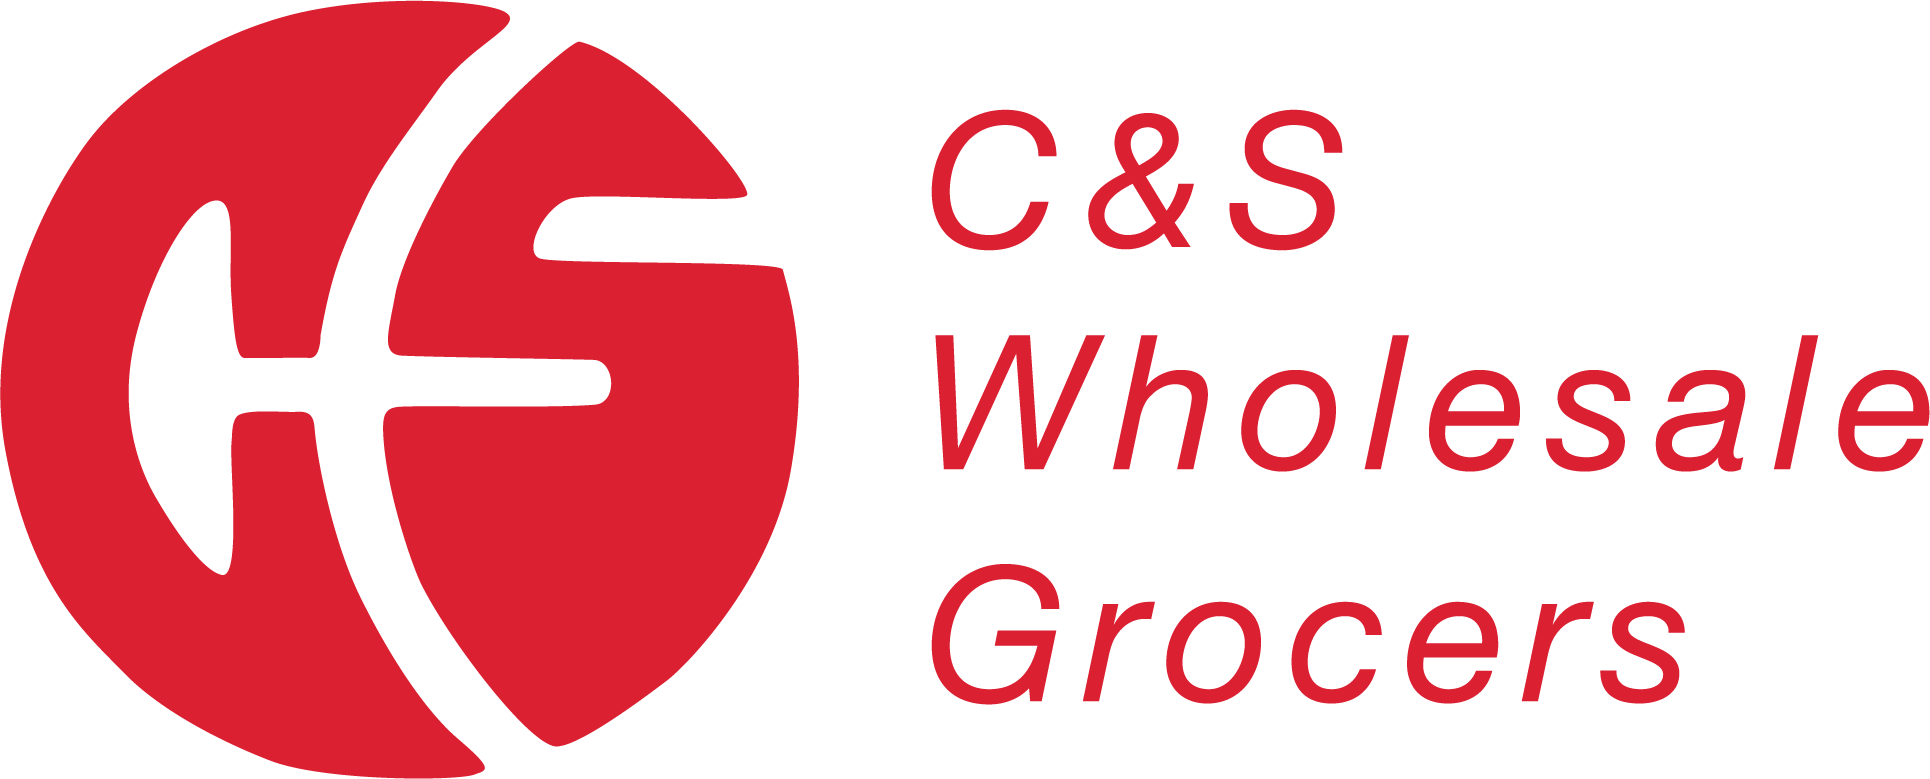 C&S  logo_red_cmyk_3 lines_Pantone 1797.